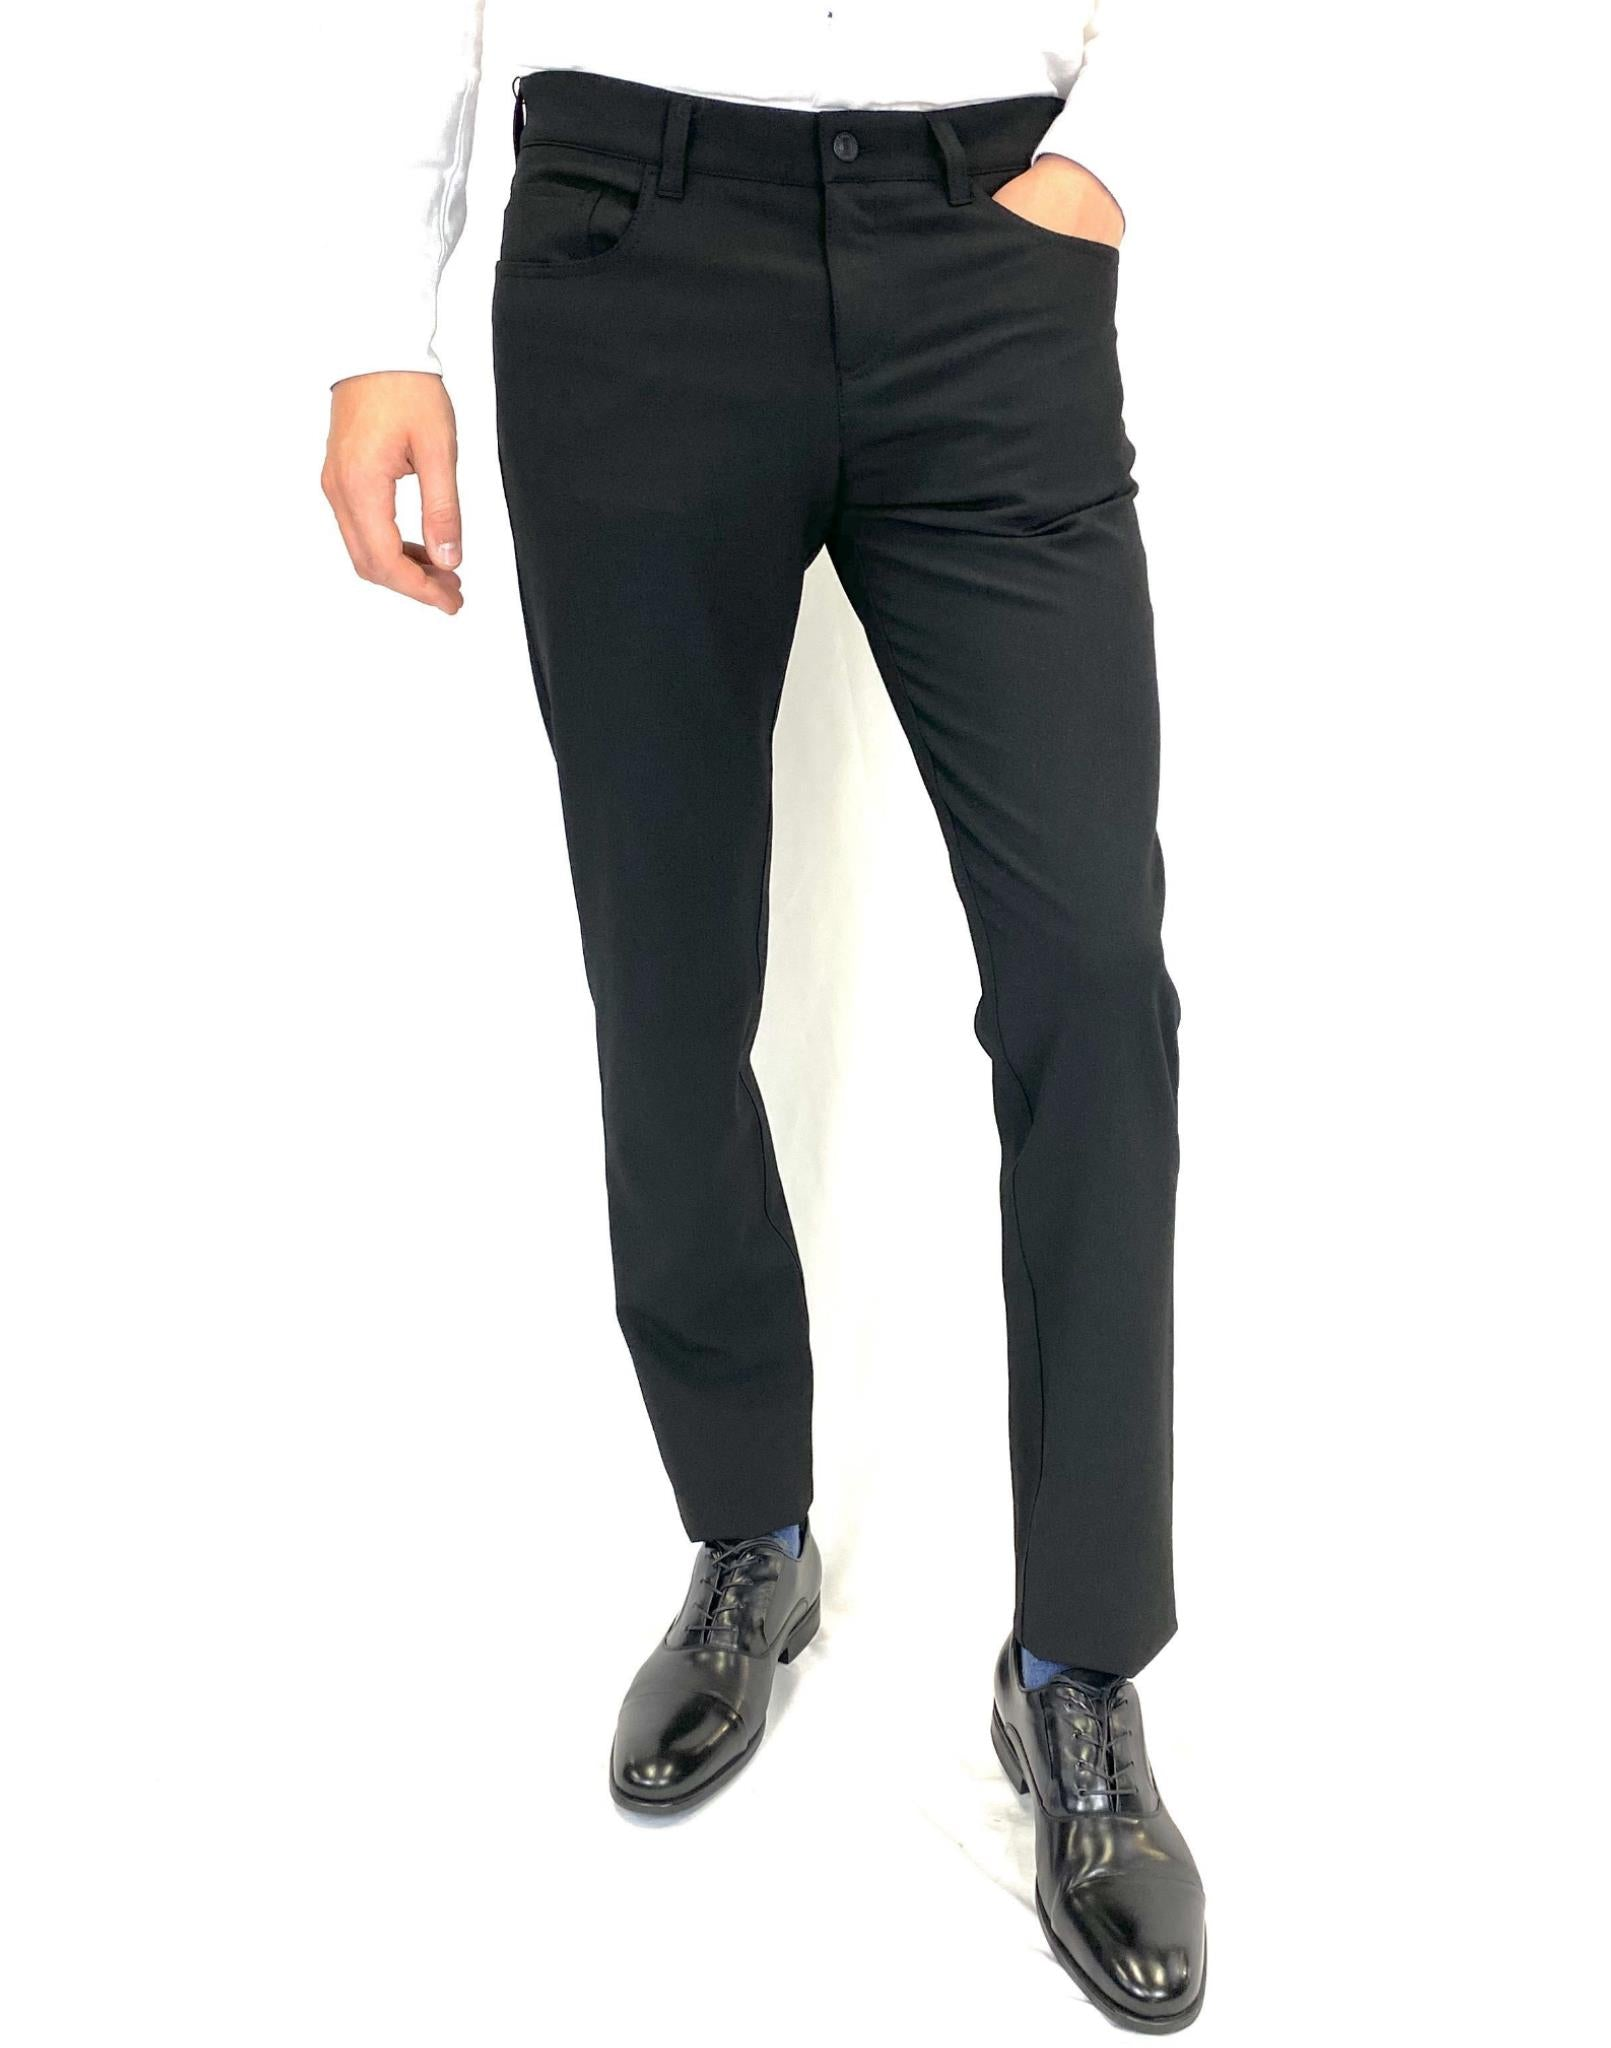 Alberto Pipe Slim Fit 5-Pocket Pants in Black